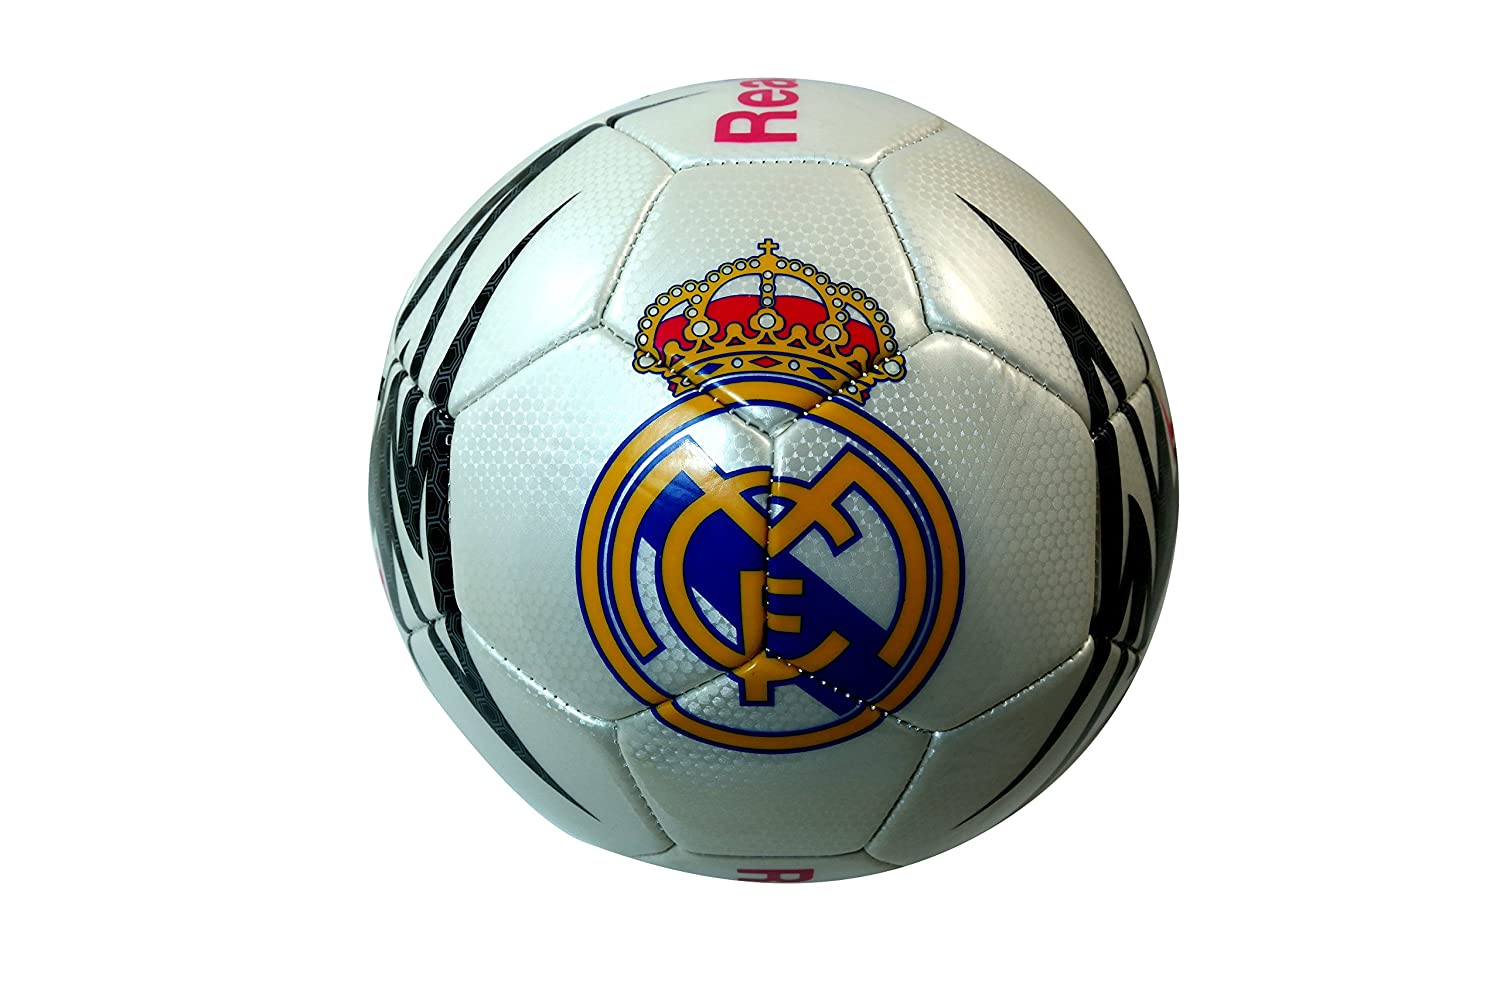 Real Madrid Authentic Official Licensedサッカーボールサイズ5 -006 B016LV4ADY